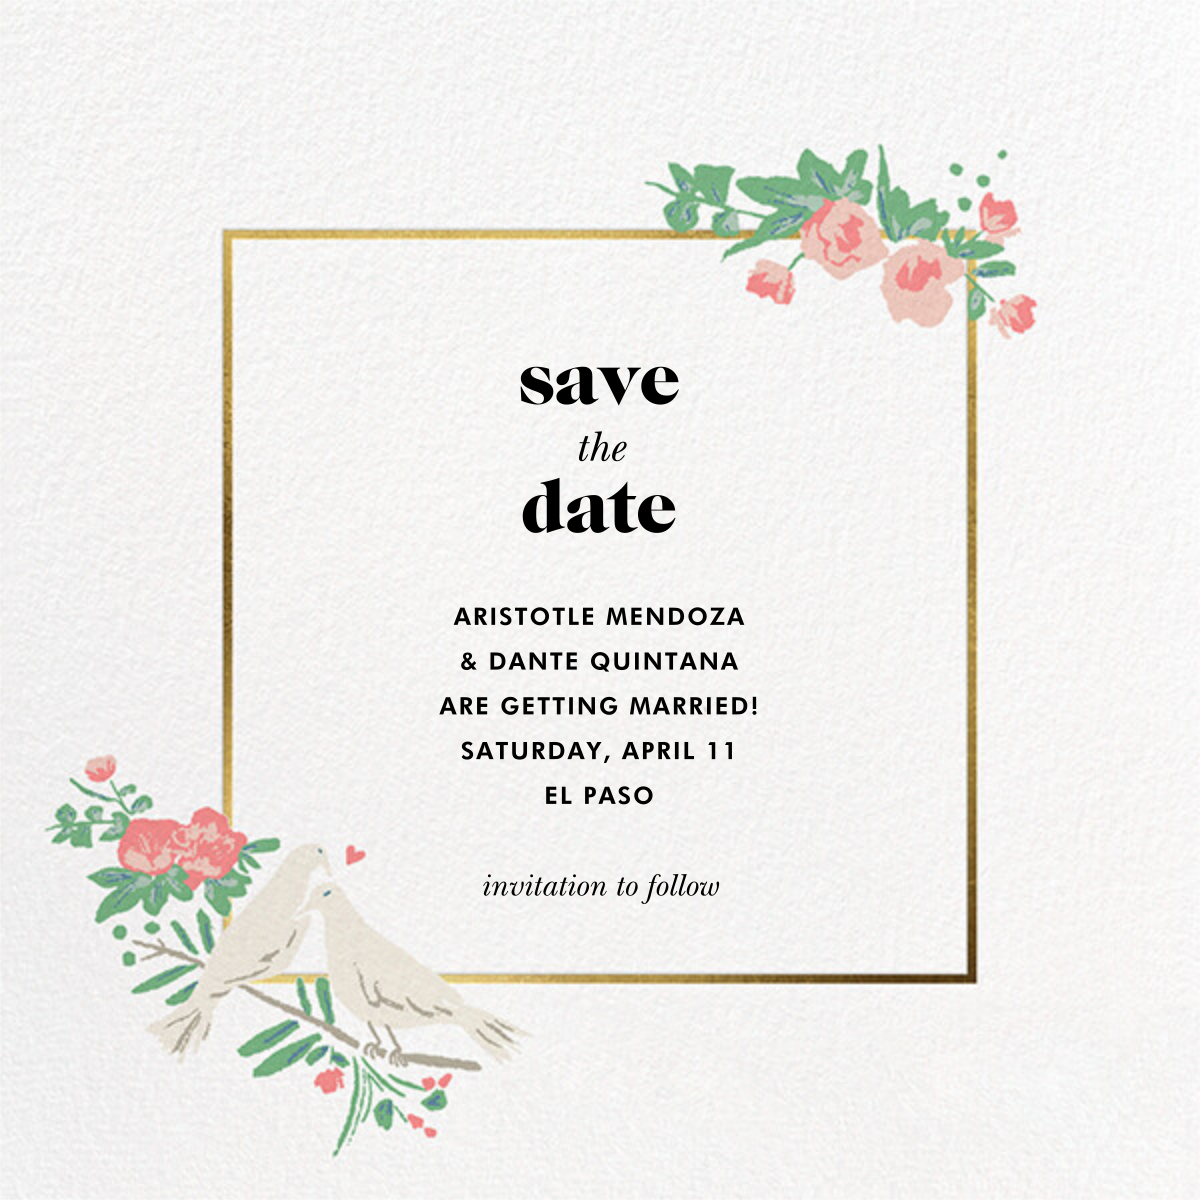 Dove Love - kate spade new york - Save the date